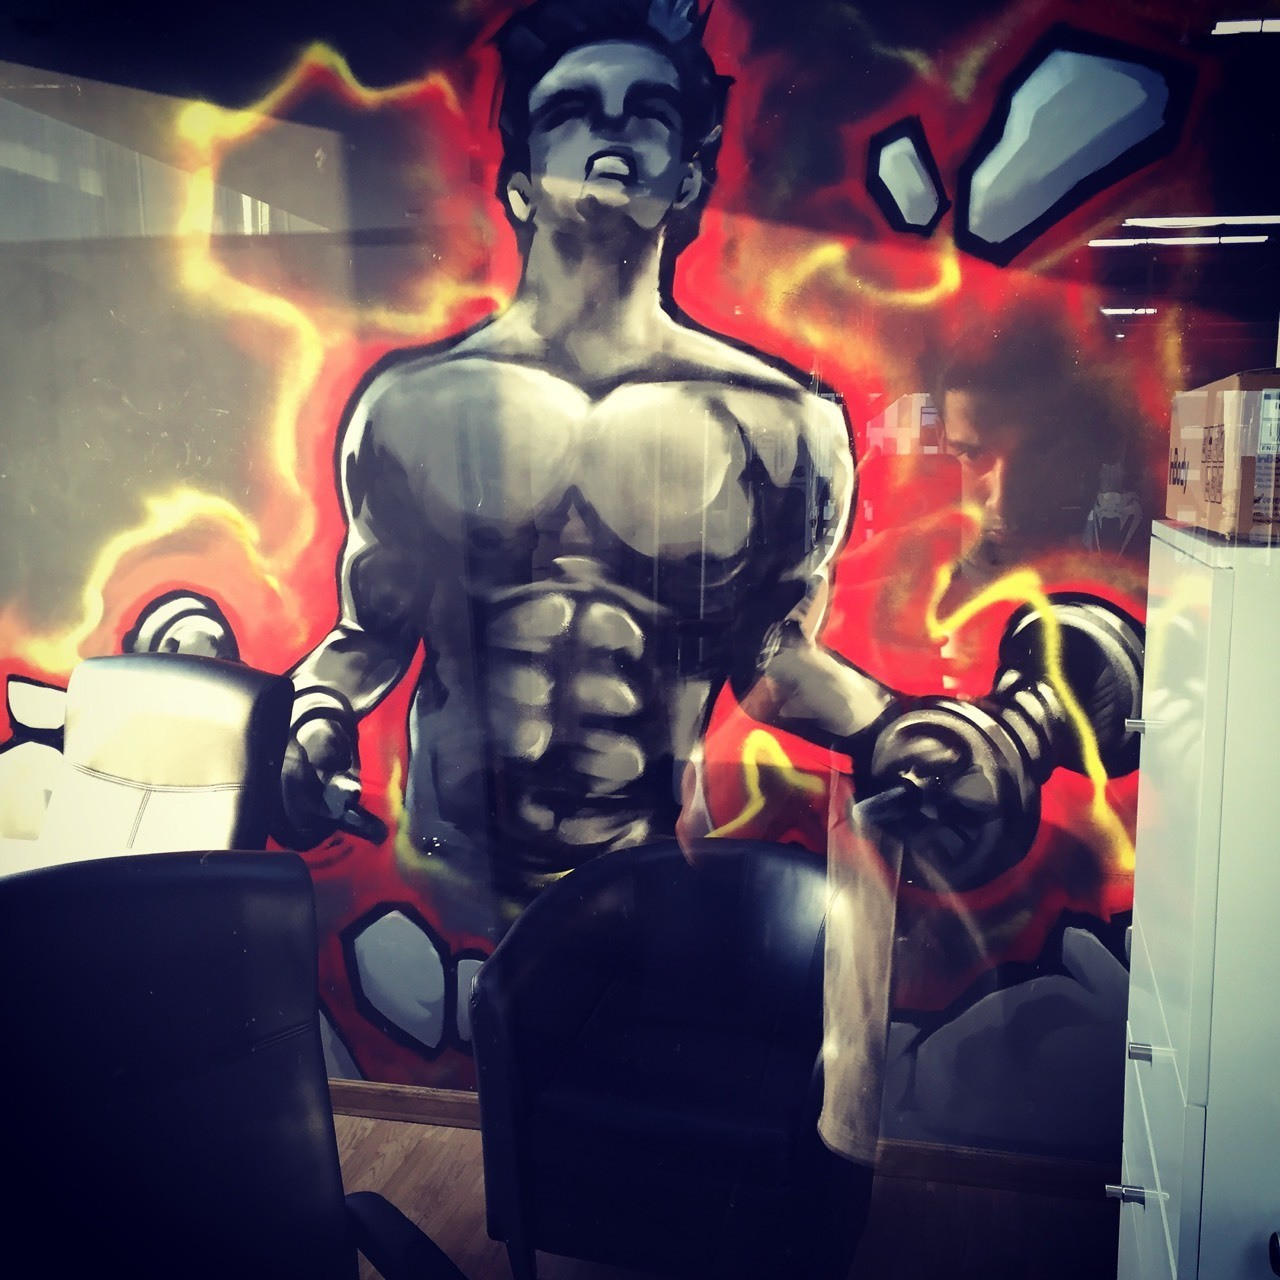 "Personal trainer at Elevation fitness, JLT Y cluster, Dubai. This is where my journey as a personal trainer begins. We are gonna be holding calisthenics beginners and Brazilian jiu jitsu beginners group classes. Really excited and looking forward to the hard work. By the way this is an awesome graffiti at the Business Bay branch at the tower called ""One by omniyat"" ."